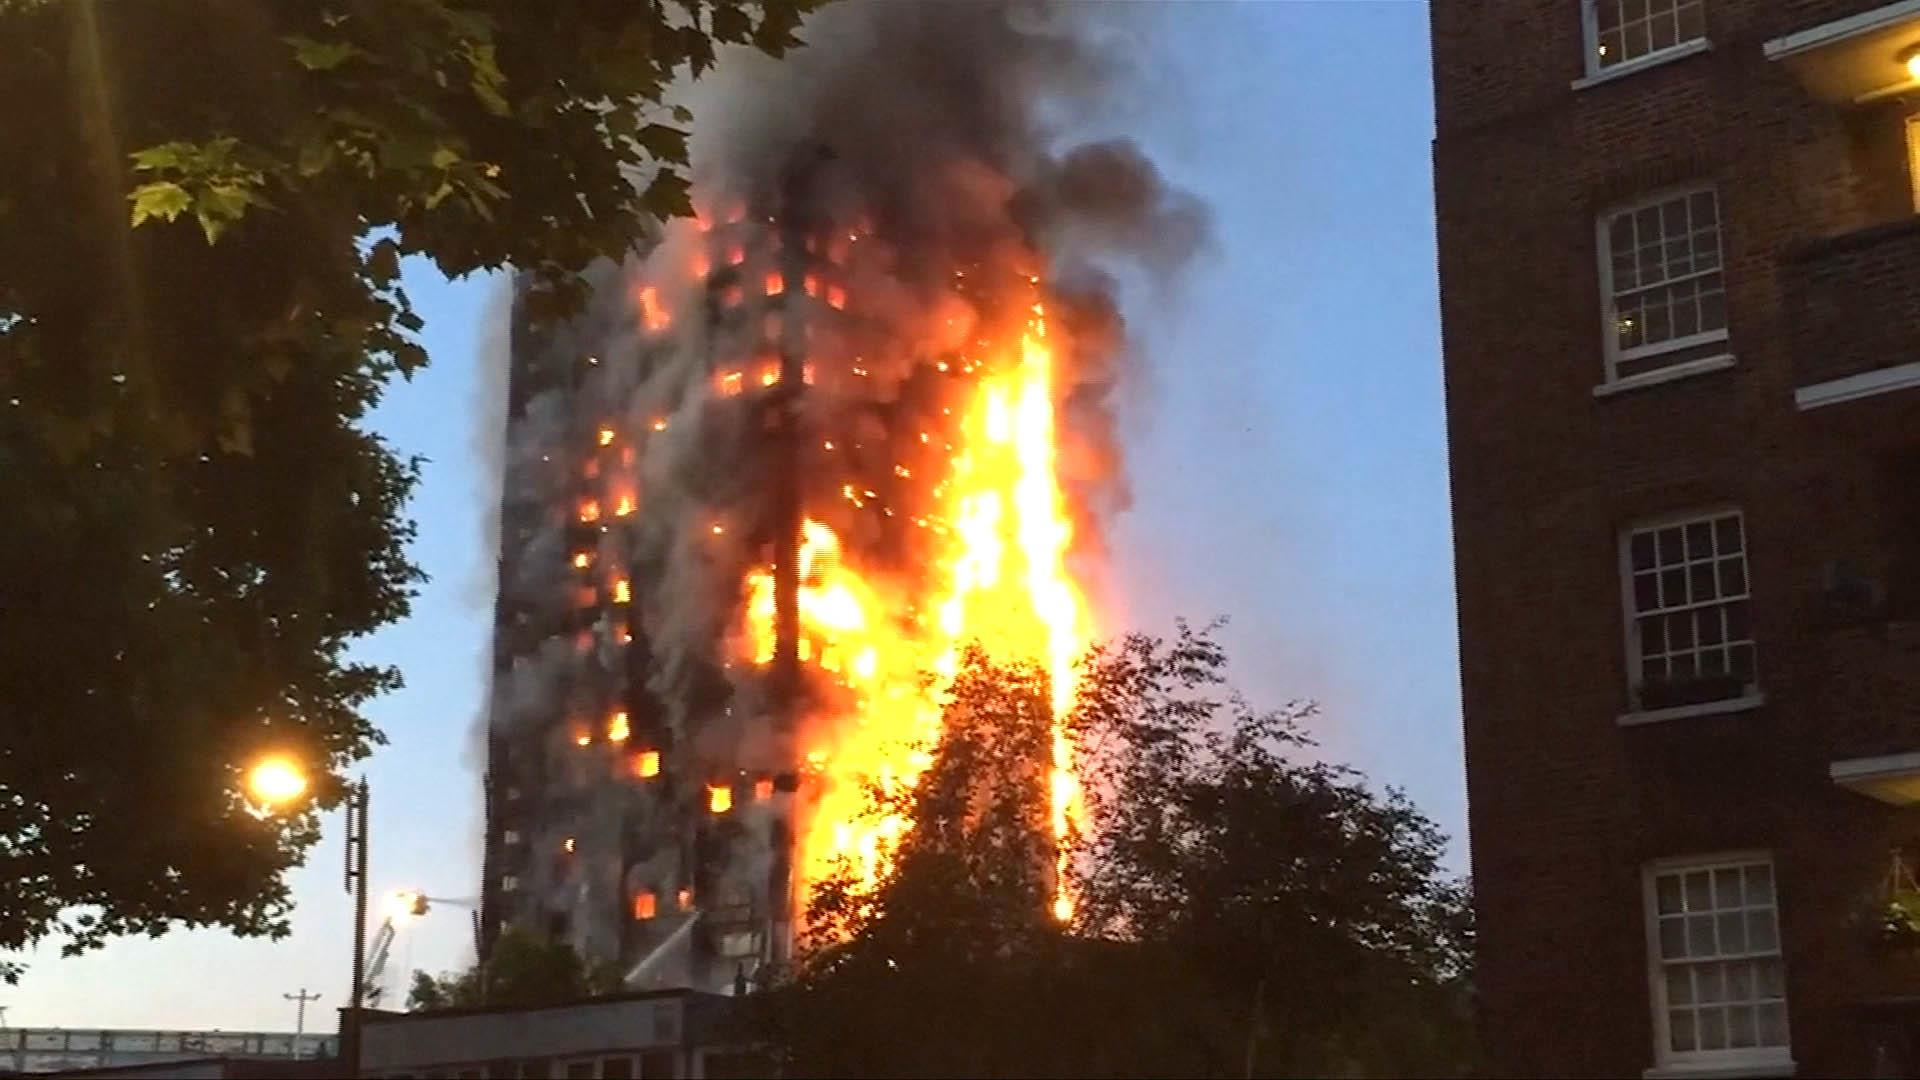 grenfell tower fire leaves  u0026 39 unhealed wound u0026 39  over london